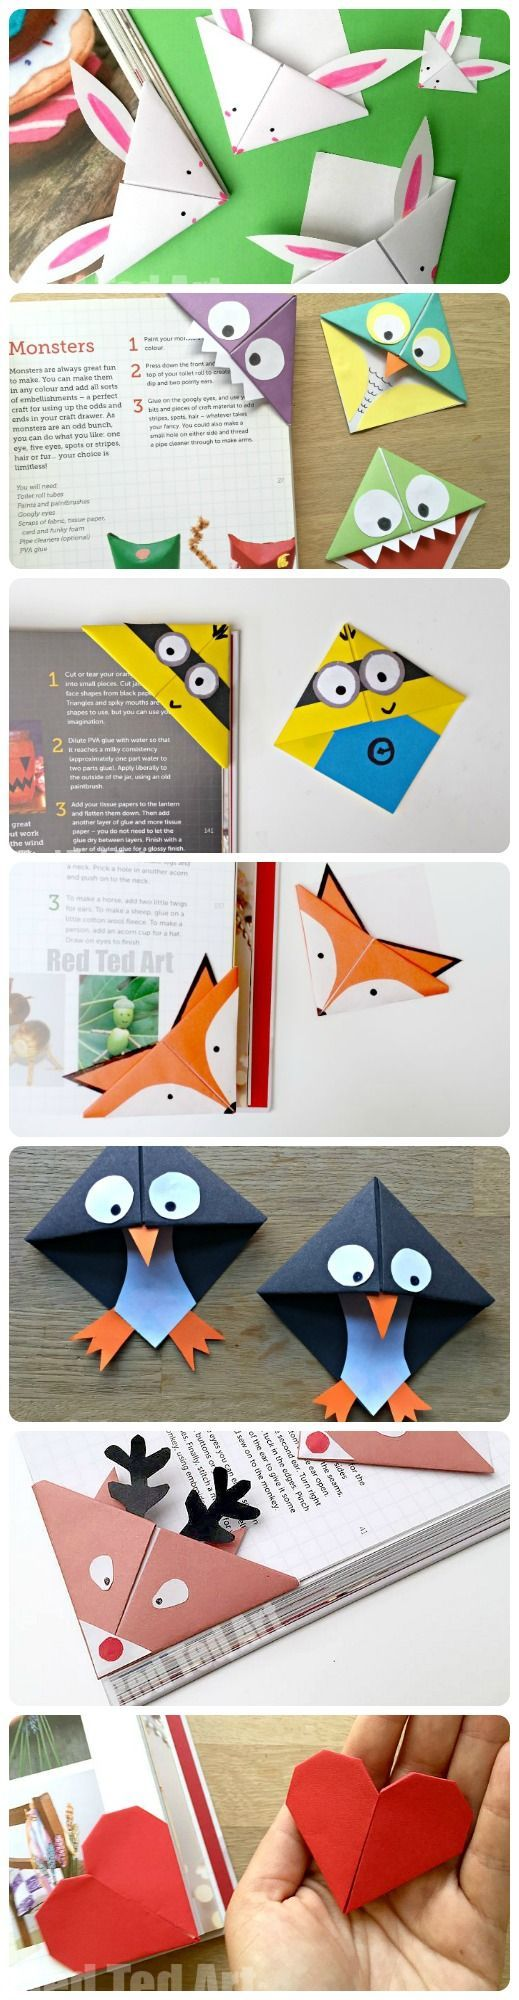 We adore making Bookmarks and these corner bookmarks are GREAT fun to make and give. So many different designs for all seasons - with more to come (check back regularly!!!!). From Bunny Bookmarks for Easter, to Minion Bookmarks for Minion fans. I adore the Monster version too. repinned by www.landfrauenverband-wh.de #landfrauen #landfrauen wü-ho #württemberg #hohenzollern